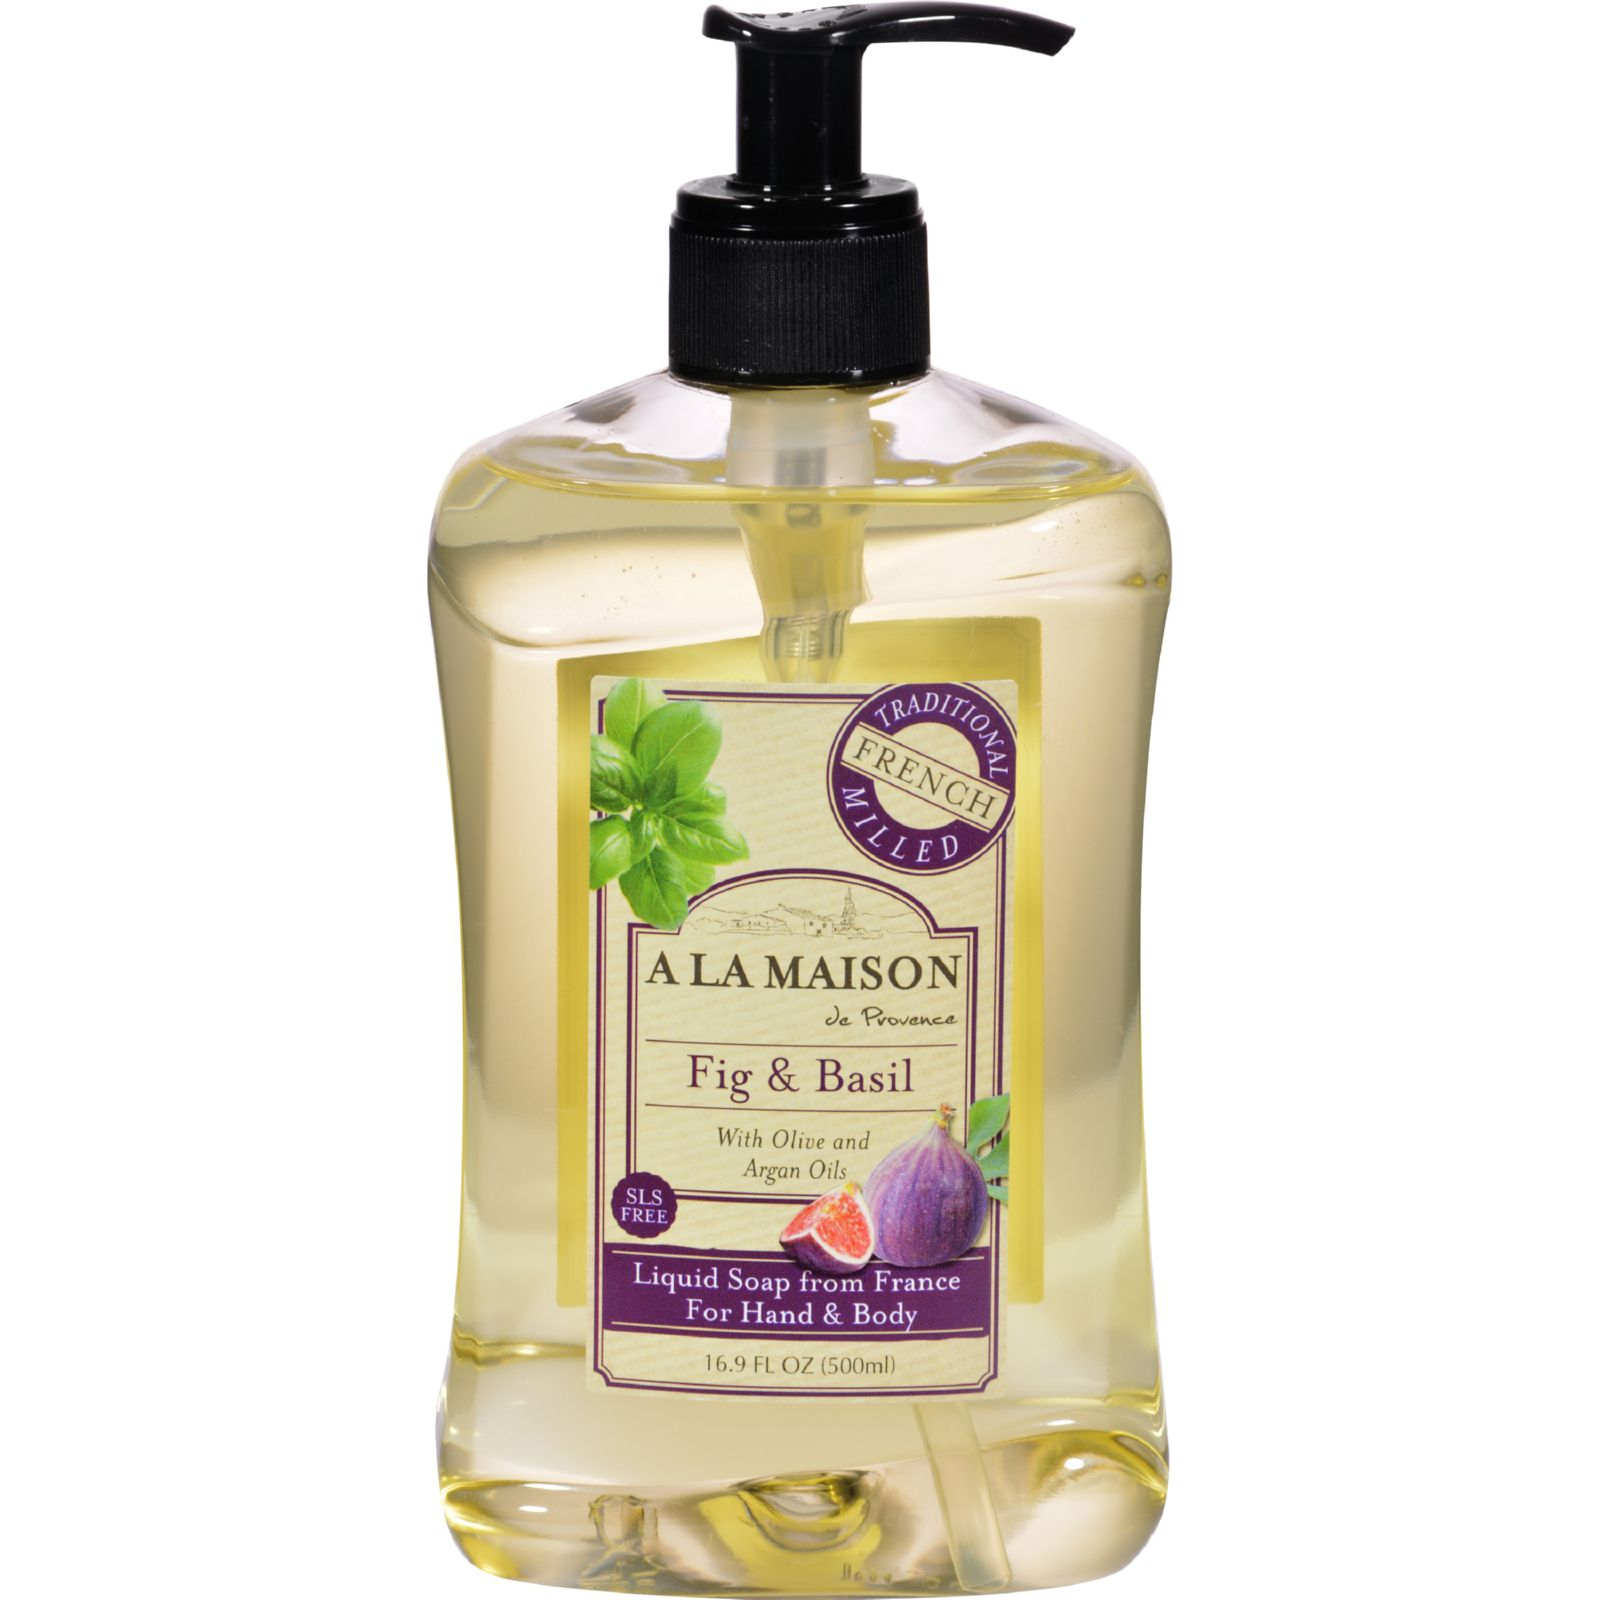 A La Maison French Liquid Soap  Fig and Basil  16 oz